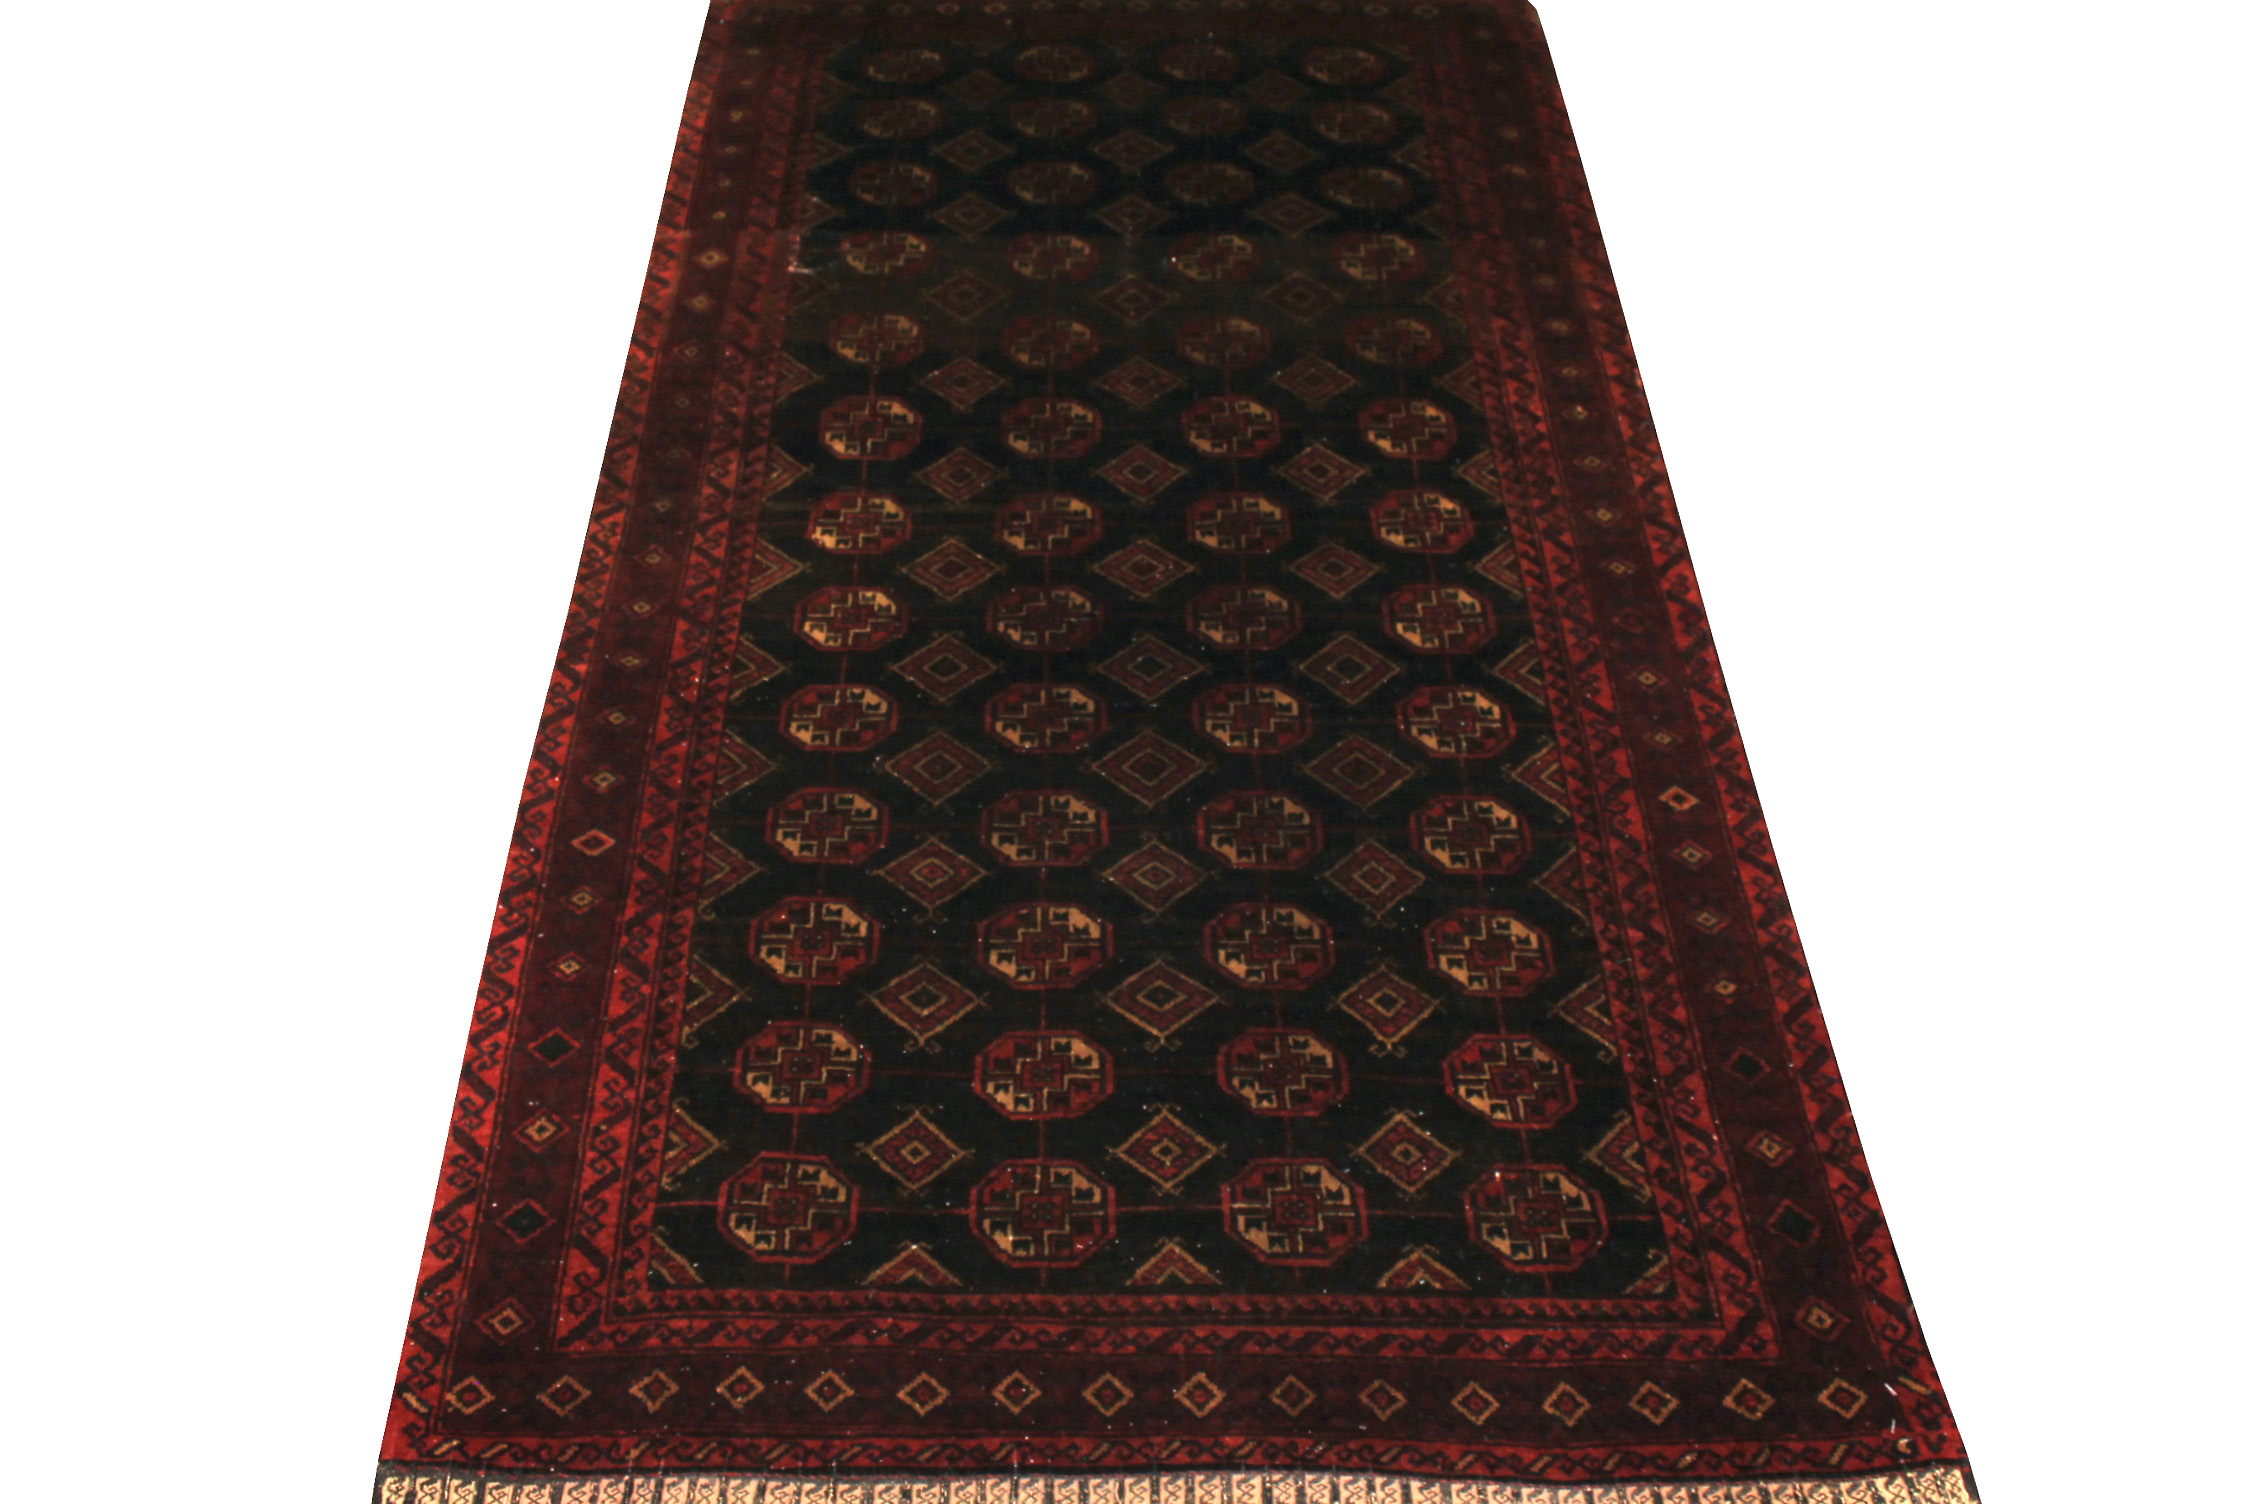 4x6 Bokhara Hand Knotted Wool Area Rug - MR19435